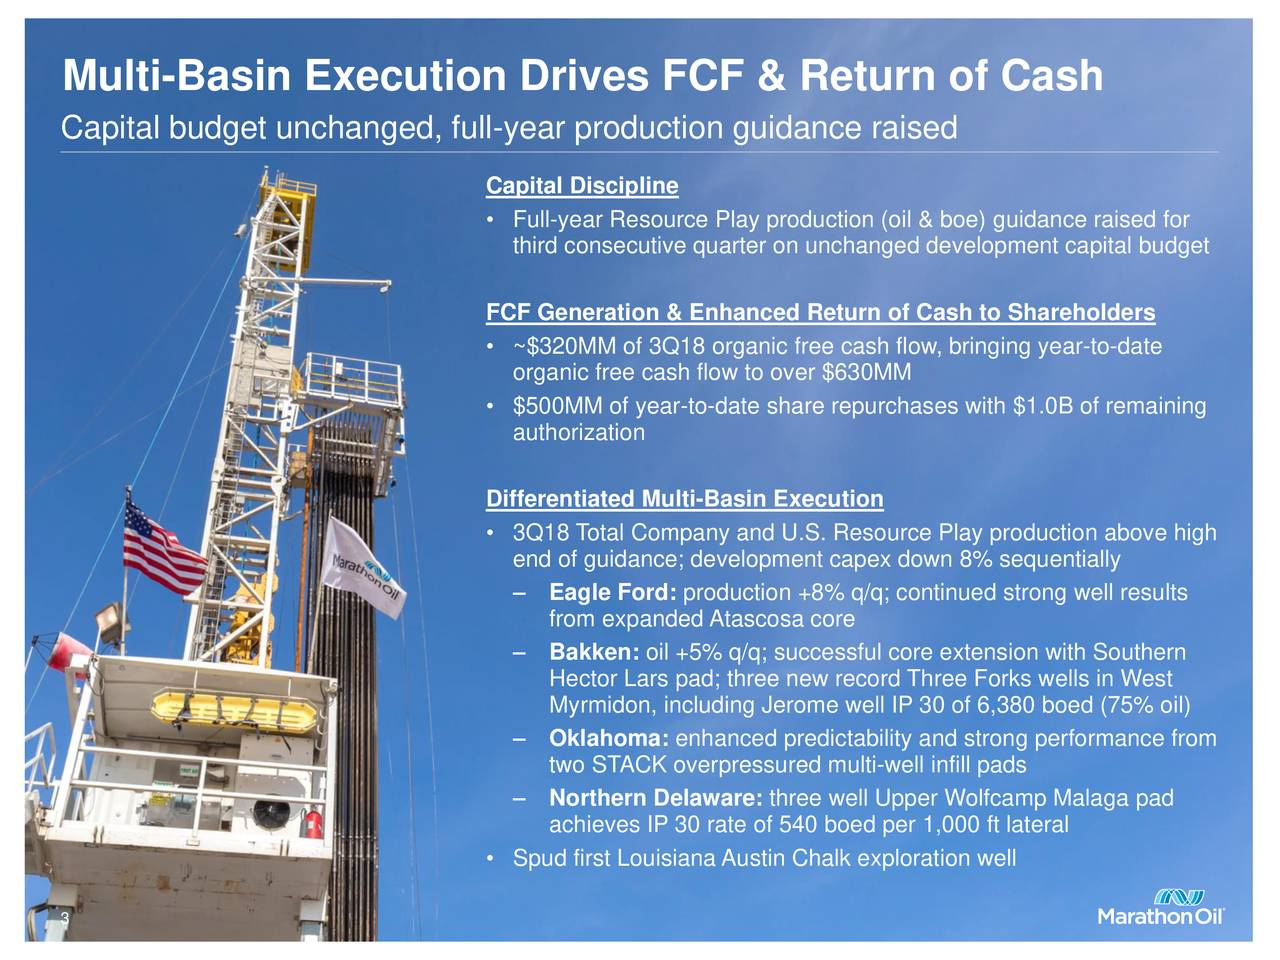 Capital budget unchanged, full-year production guidance raised Capital Discipline • Full-year Resource Play production (oil & boe) guidance raised for third consecutive quarter on unchanged development capital budget FCF Generation & Enhanced Return of Cash to Shareholders • ~$320MM of 3Q18 organic free cash flow, bringing year-to-date organic free cash flow to over $630MM • $500MM of year-to-date share repurchases with $1.0B of remaining authorization Differentiated Multi-Basin Execution • 3Q18 Total Company and U.S. Resource Play production above high end of guidance; development capex down 8% sequentially – Eagle Ford: production +8% q/q; continued strong well results from expanded Atascosa core – Bakken: oil +5% q/q; successful core extension with Southern Hector Lars pad; three new record Three Forks wells in West Myrmidon, including Jerome well IP 30 of 6,380 boed (75% oil) – Oklahoma: enhanced predictability and strong performance from two STACK overpressured multi-well infill pads – Northern Delaware: three well Upper Wolfcamp Malaga pad achieves IP 30 rate of 540 boed per 1,000 ft lateral • Spud first Louisiana Austin Chalk exploration well 3